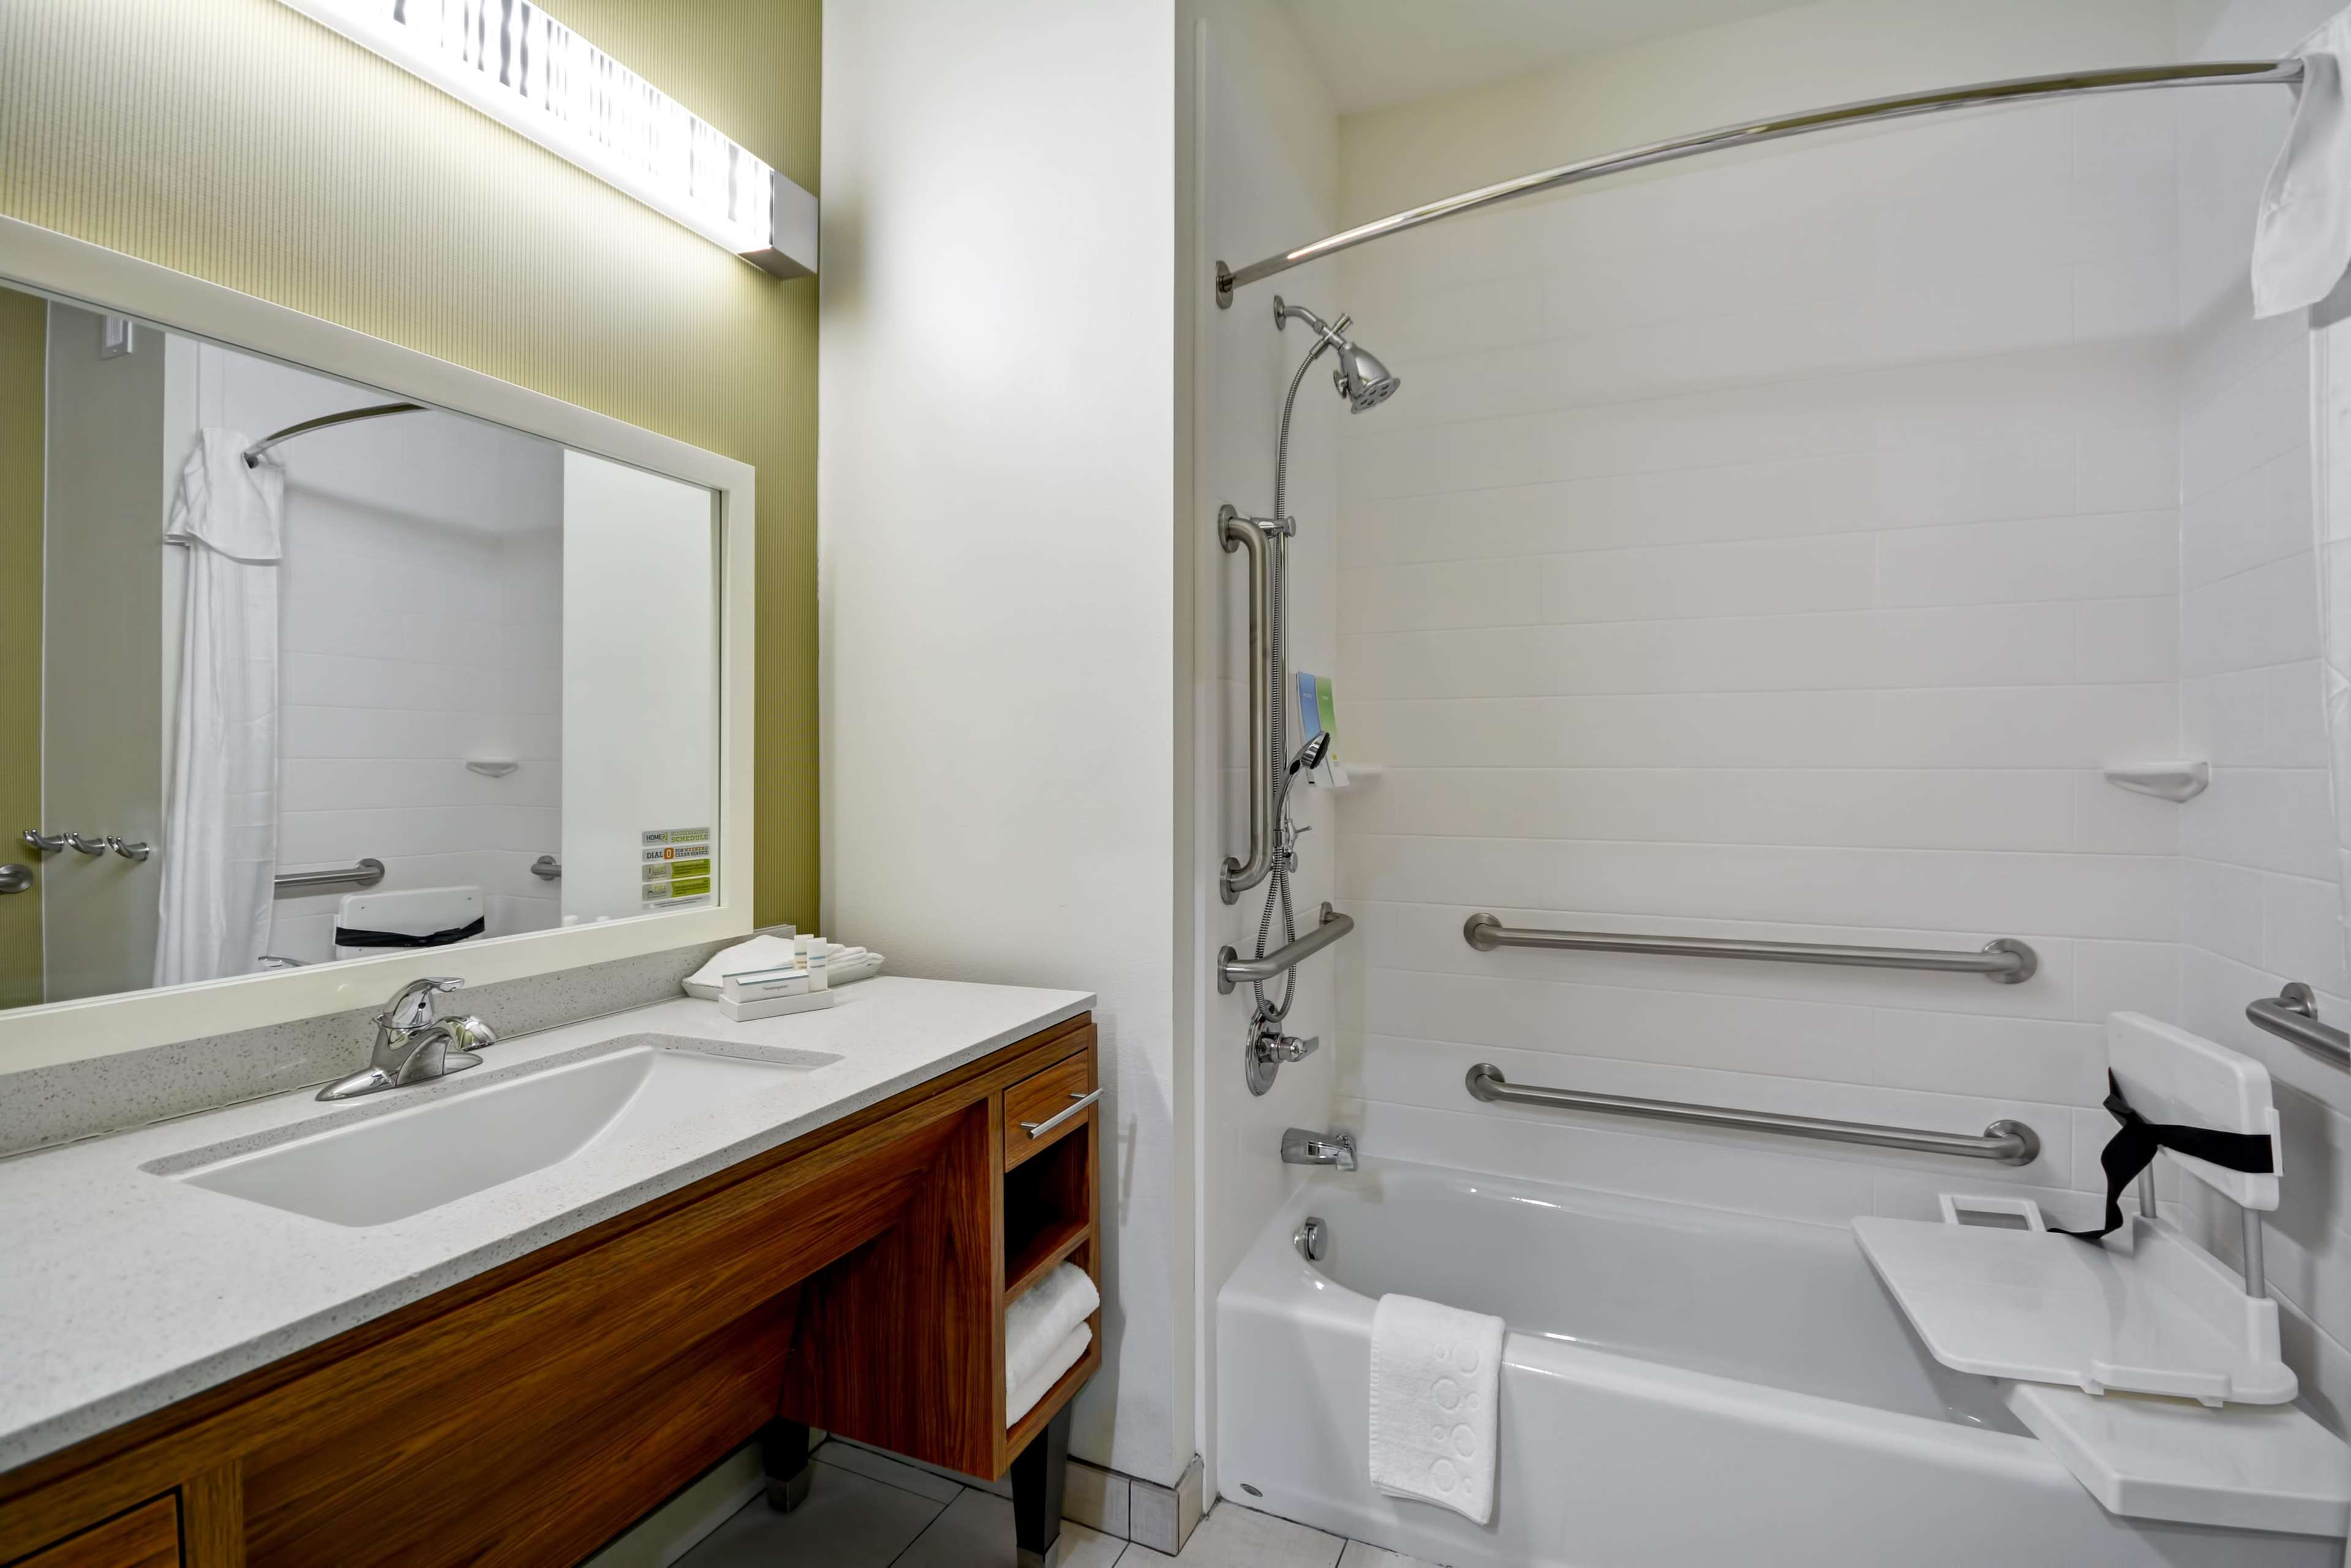 Home2 Suites by Hilton Fort Worth Southwest Cityview image 14